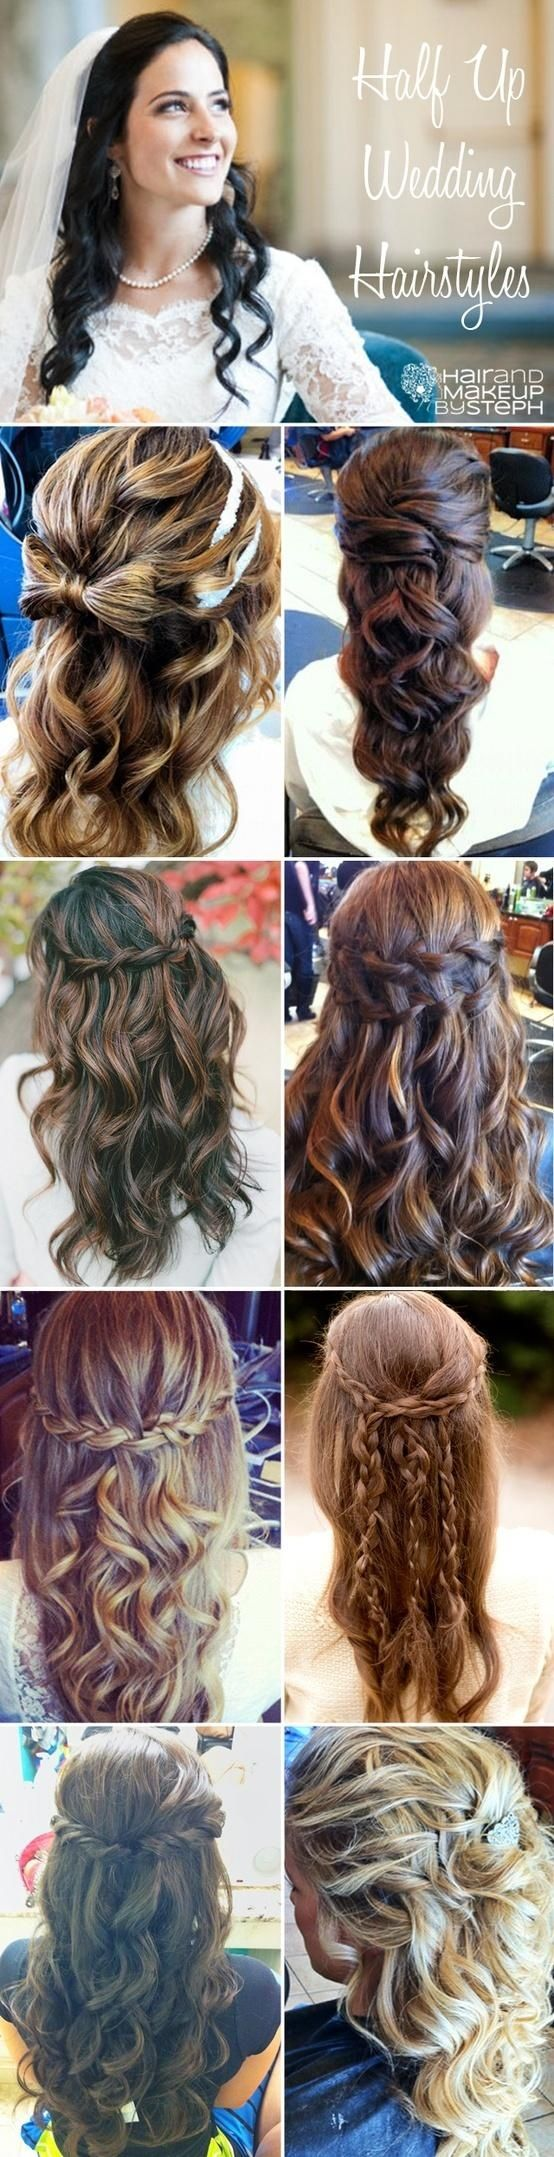 Half up, half down. Yes! I don't understand why so many brides do up-do's when hair being down or partially down is way more enhancing to the face!